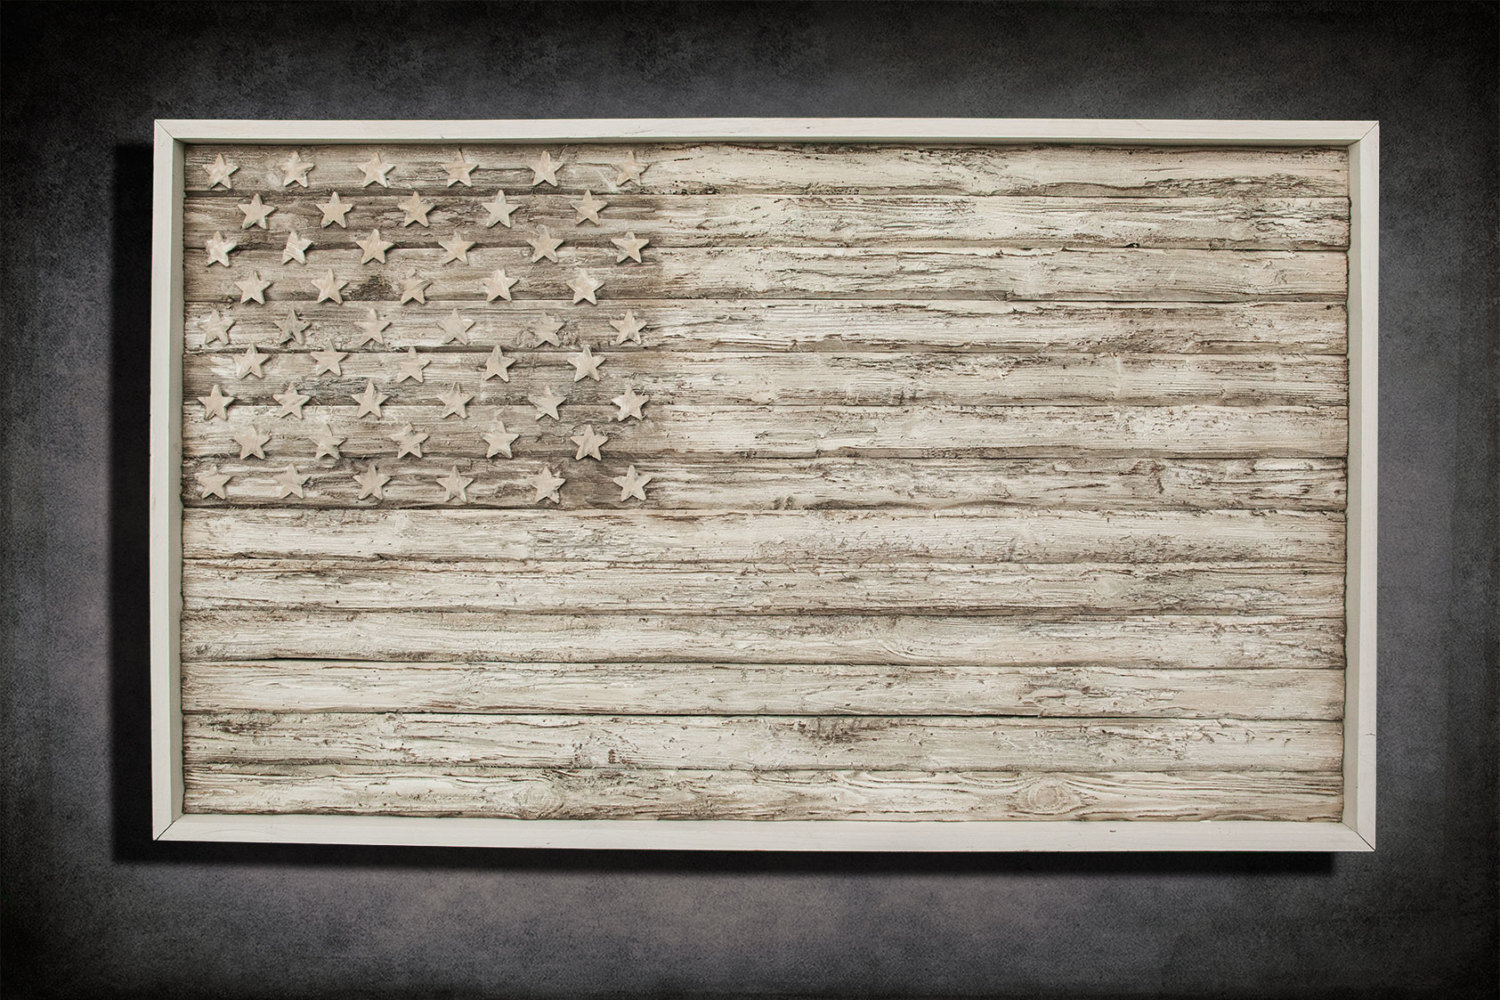 American Flag Weathered Wood One Of A Kind Wooden Vintage